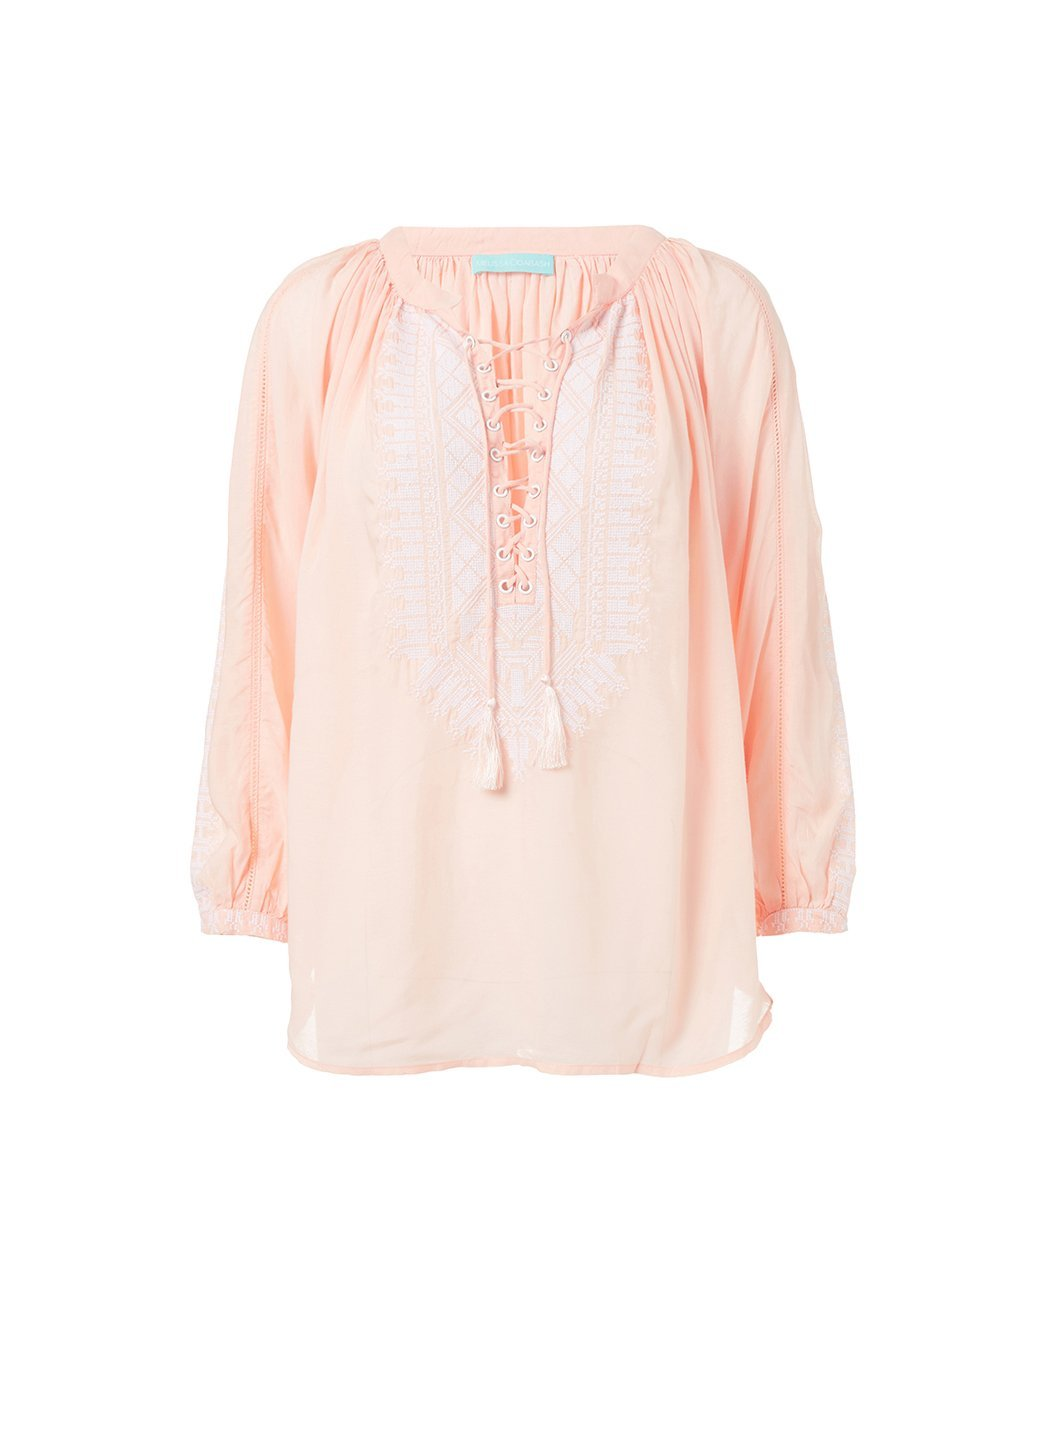 simona peach white laceup embroidered blouse 2019